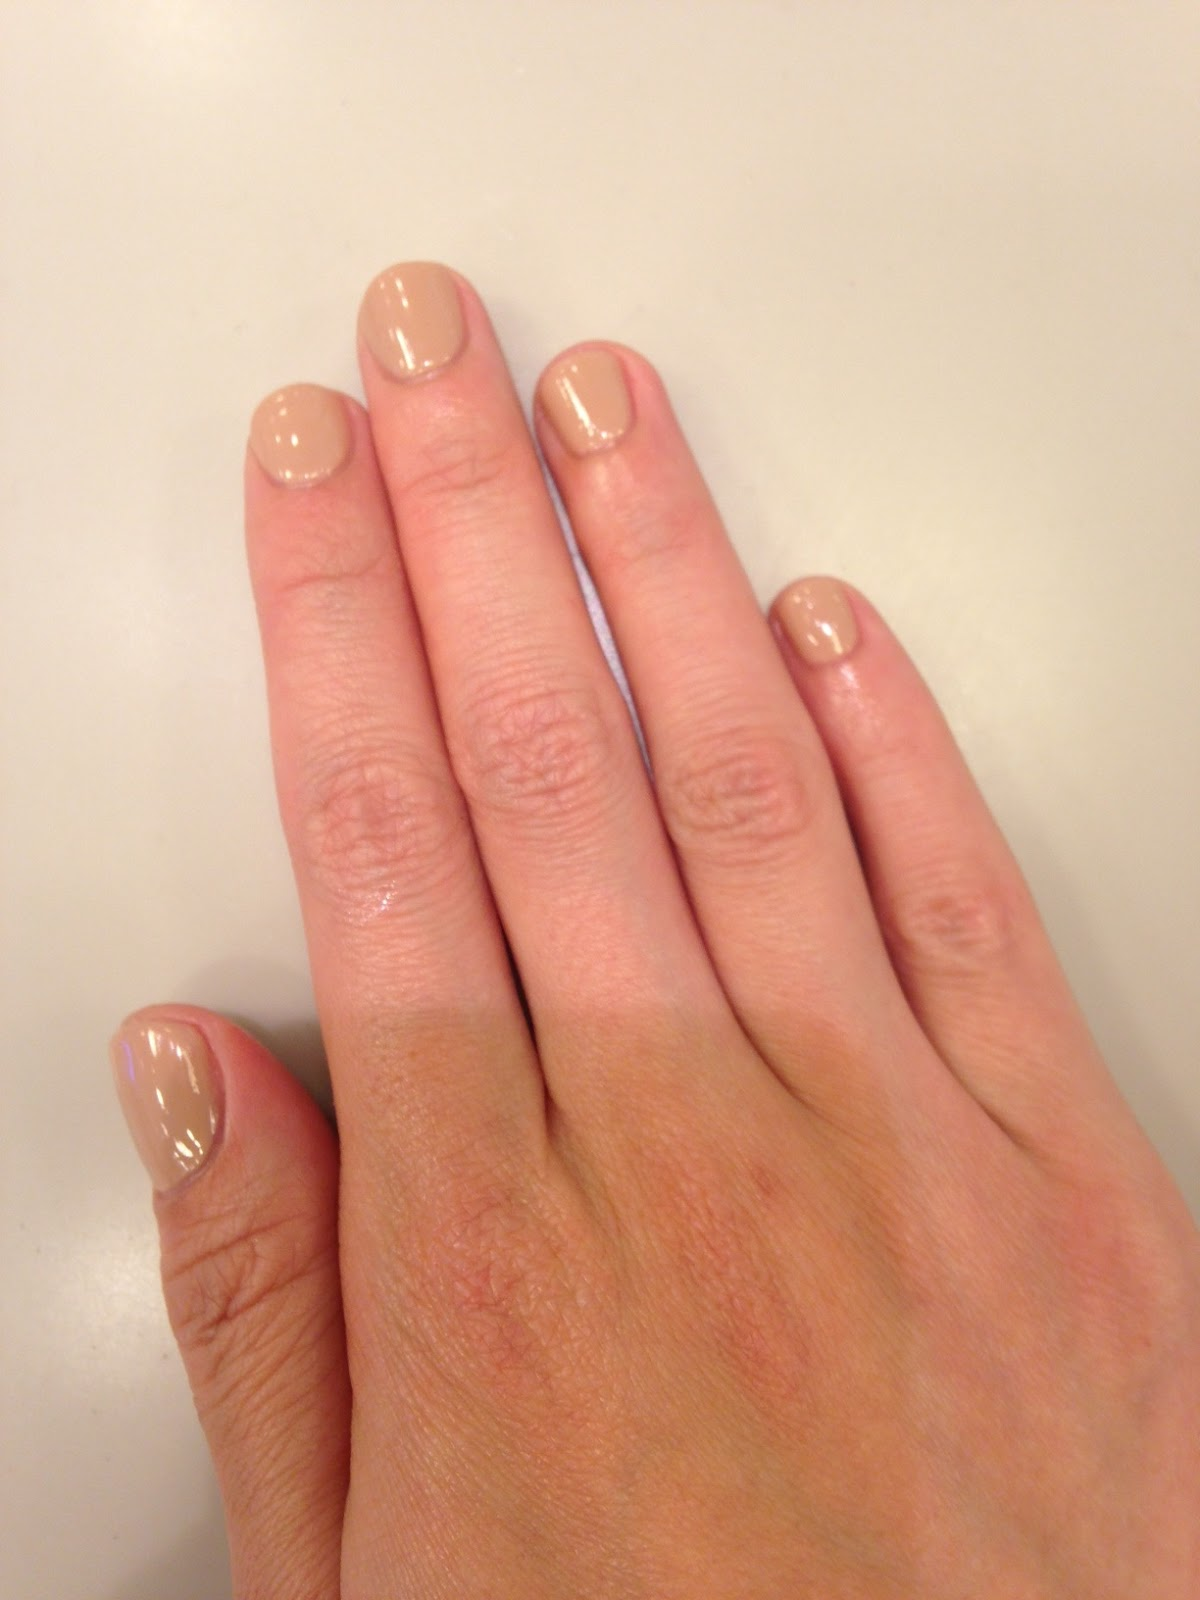 beautyorbread: A Sharing: Gel Manicure at Nails Inc